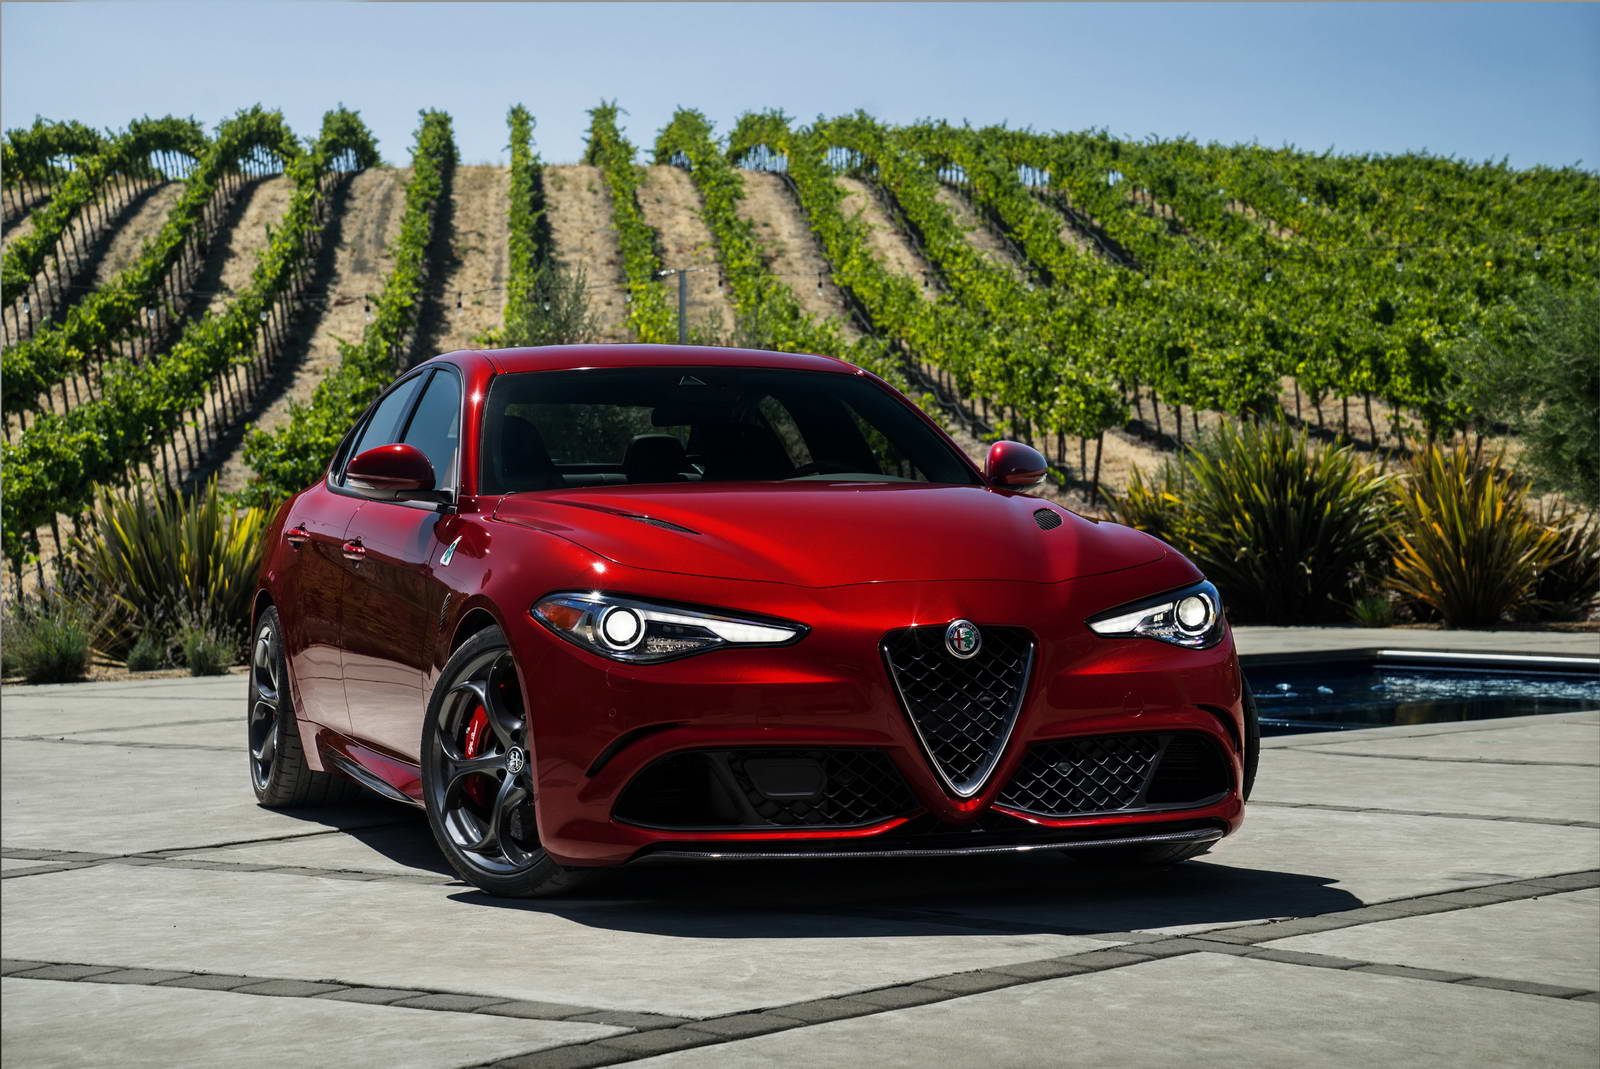 Alfa romeo giulia 2016 engine sound 13